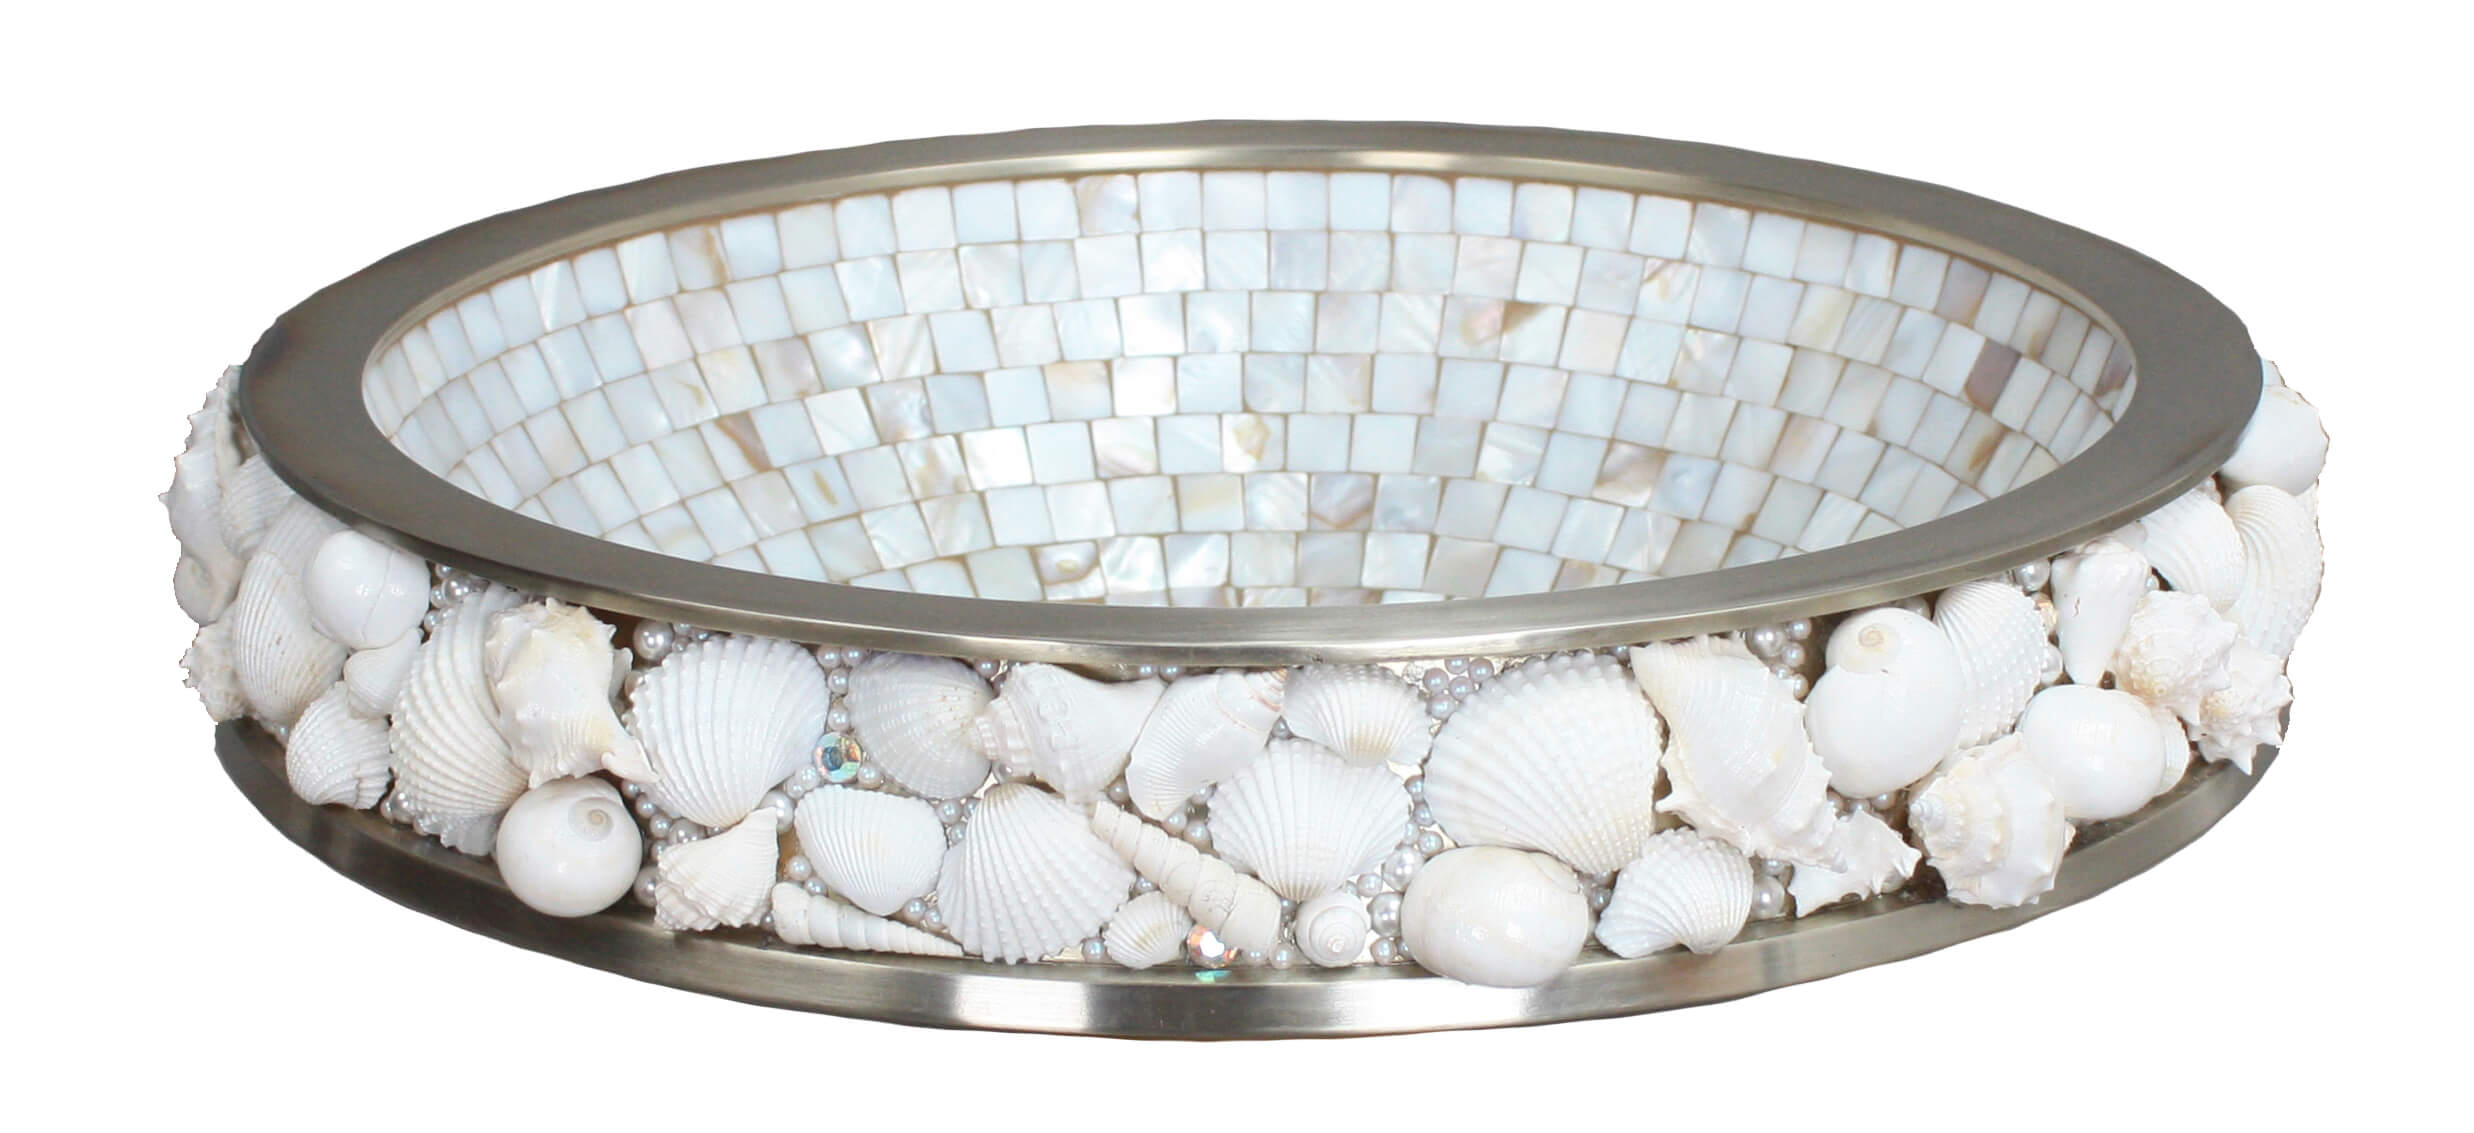 Shell Bathroom Sink : Bathroom Sinks - Jewelry - PSC08-WB Sea Shell Bathroom Vessel Sink ...